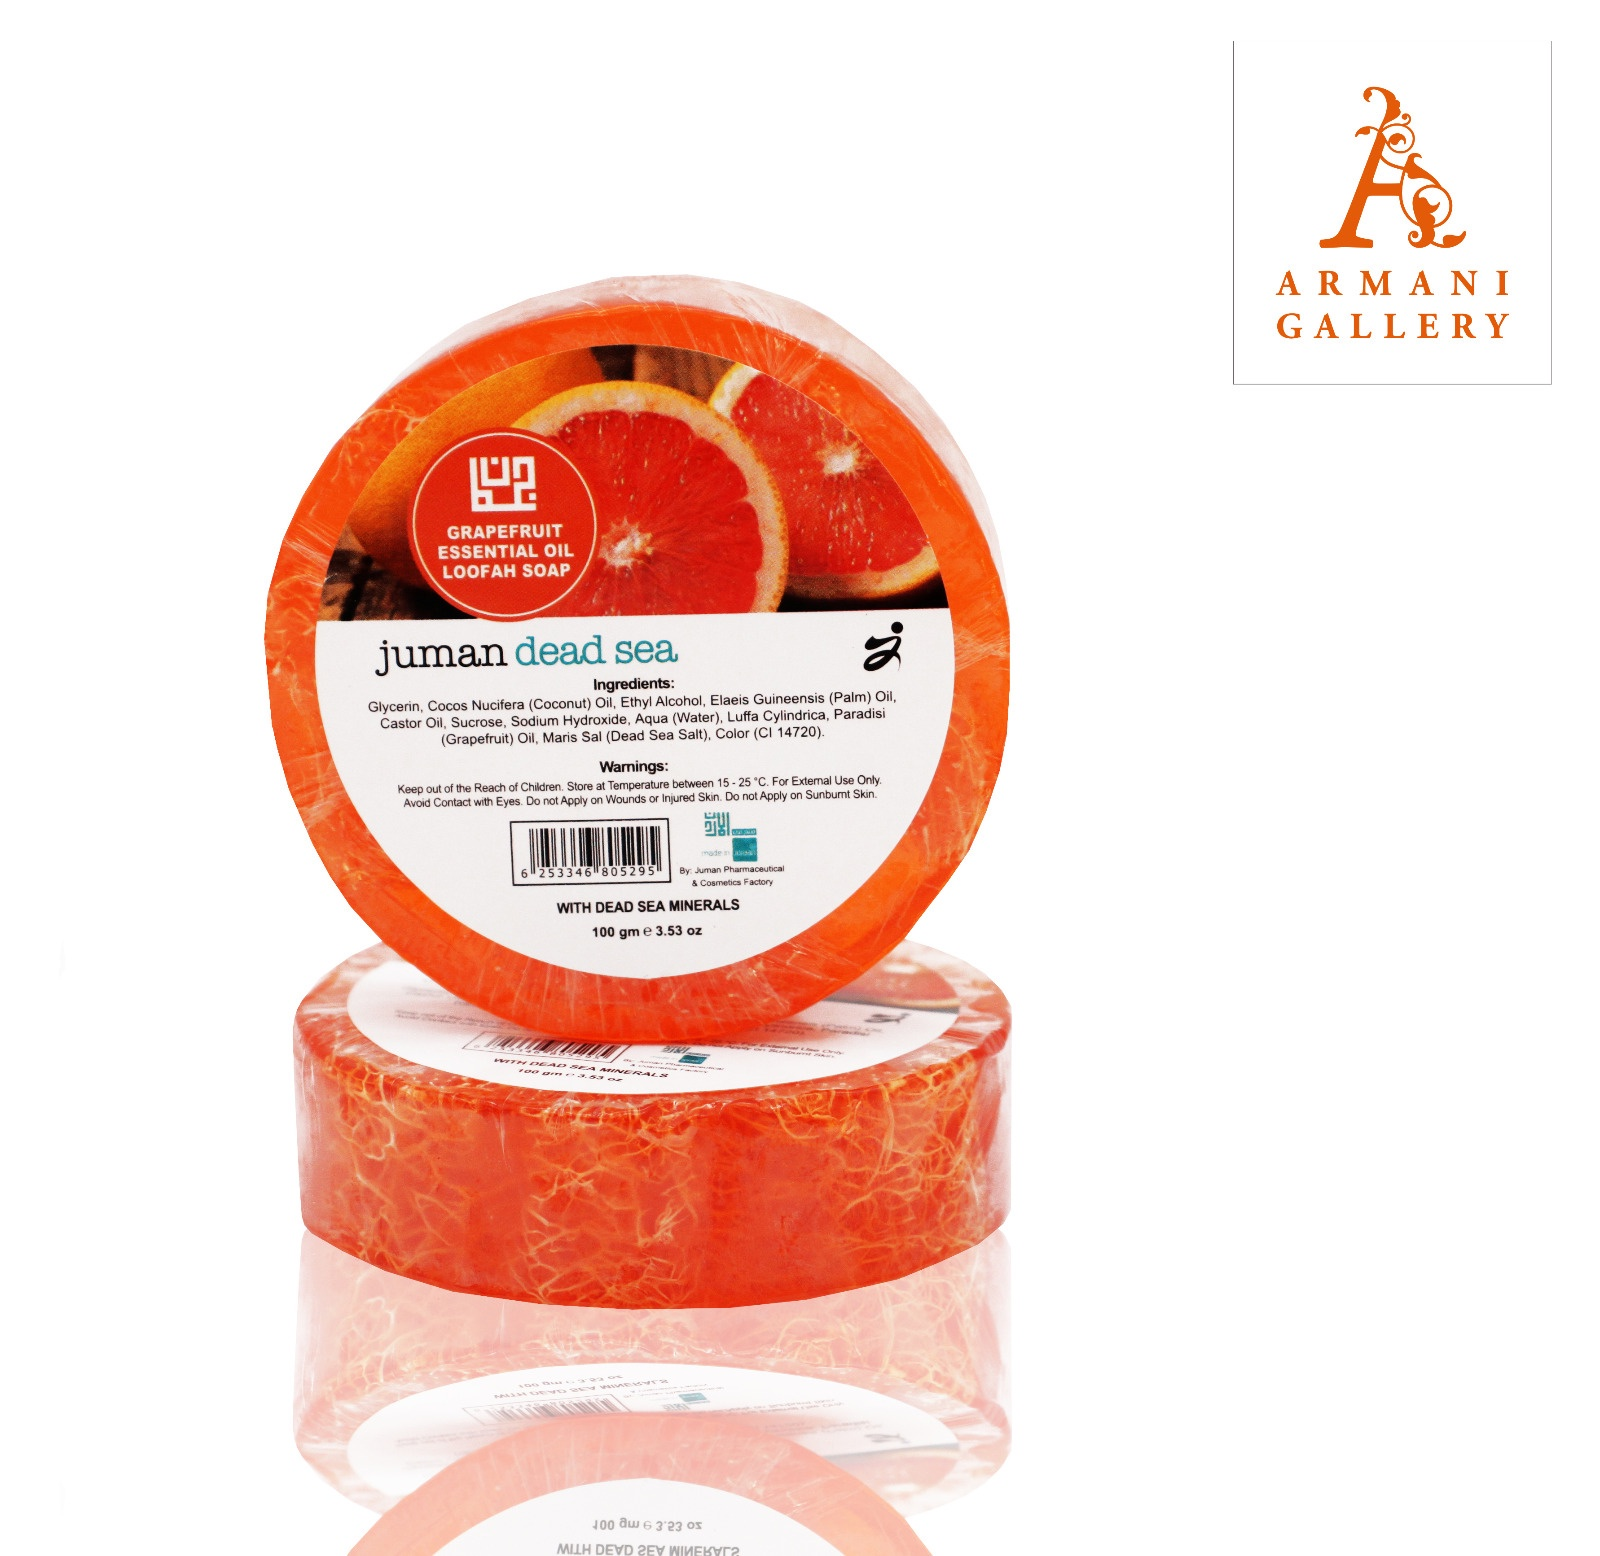 Buy Grapefruit Essential Oil Loofah Soap